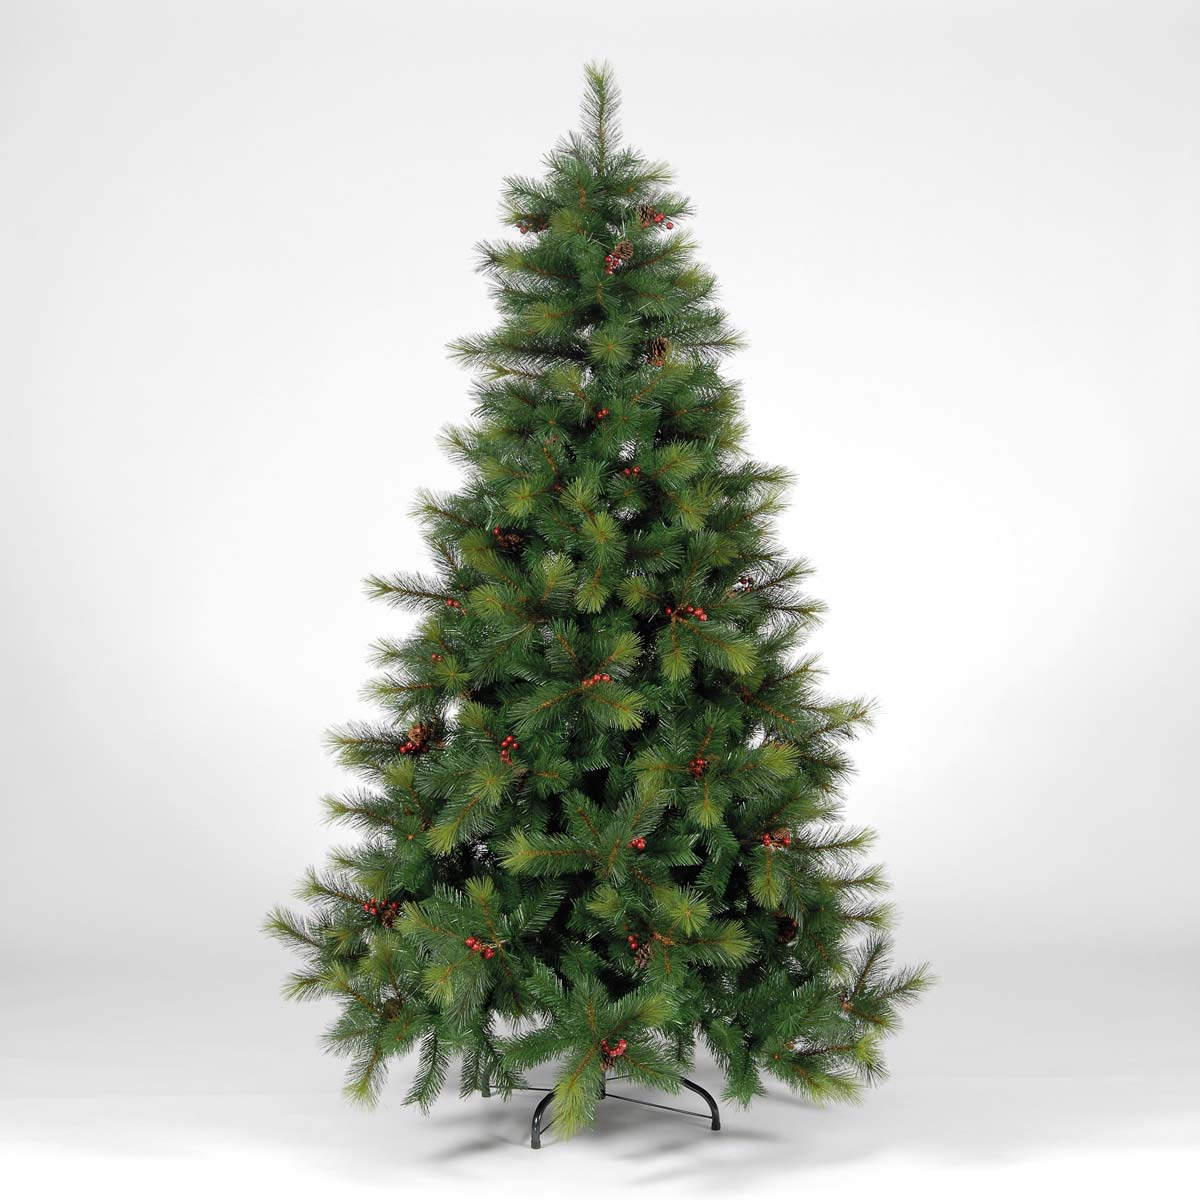 6ft180cm Columbia Pine Green Artificial Christmas Tree